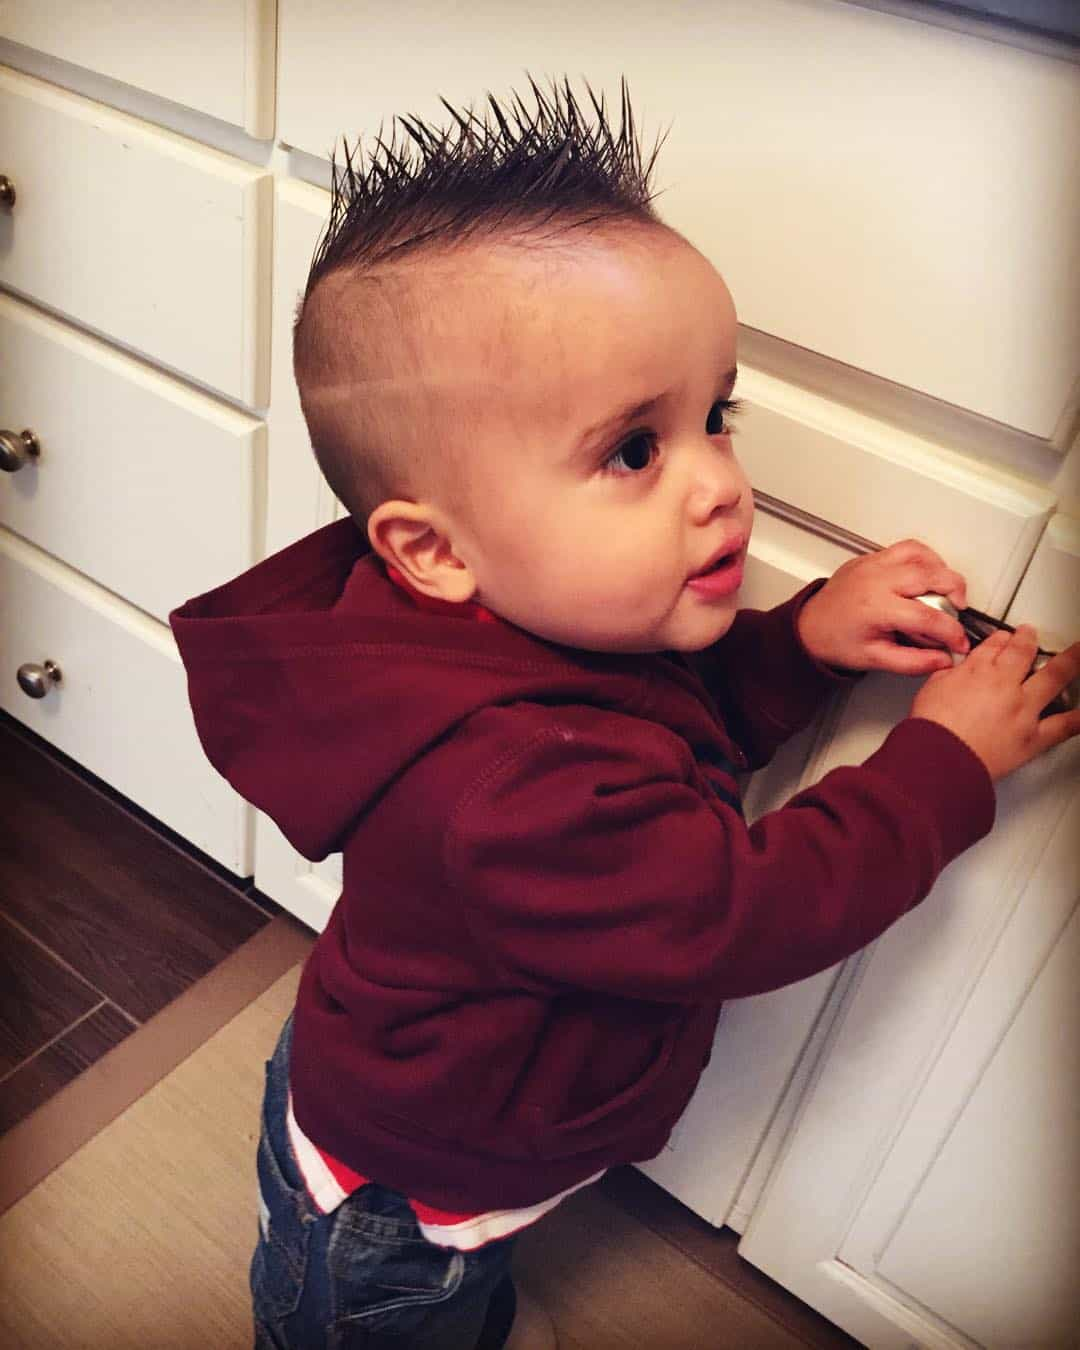 Pleasing 25 Cute Baby Boy Haircuts For Your Lovely Toddler Hairstyle Inspiration Daily Dogsangcom